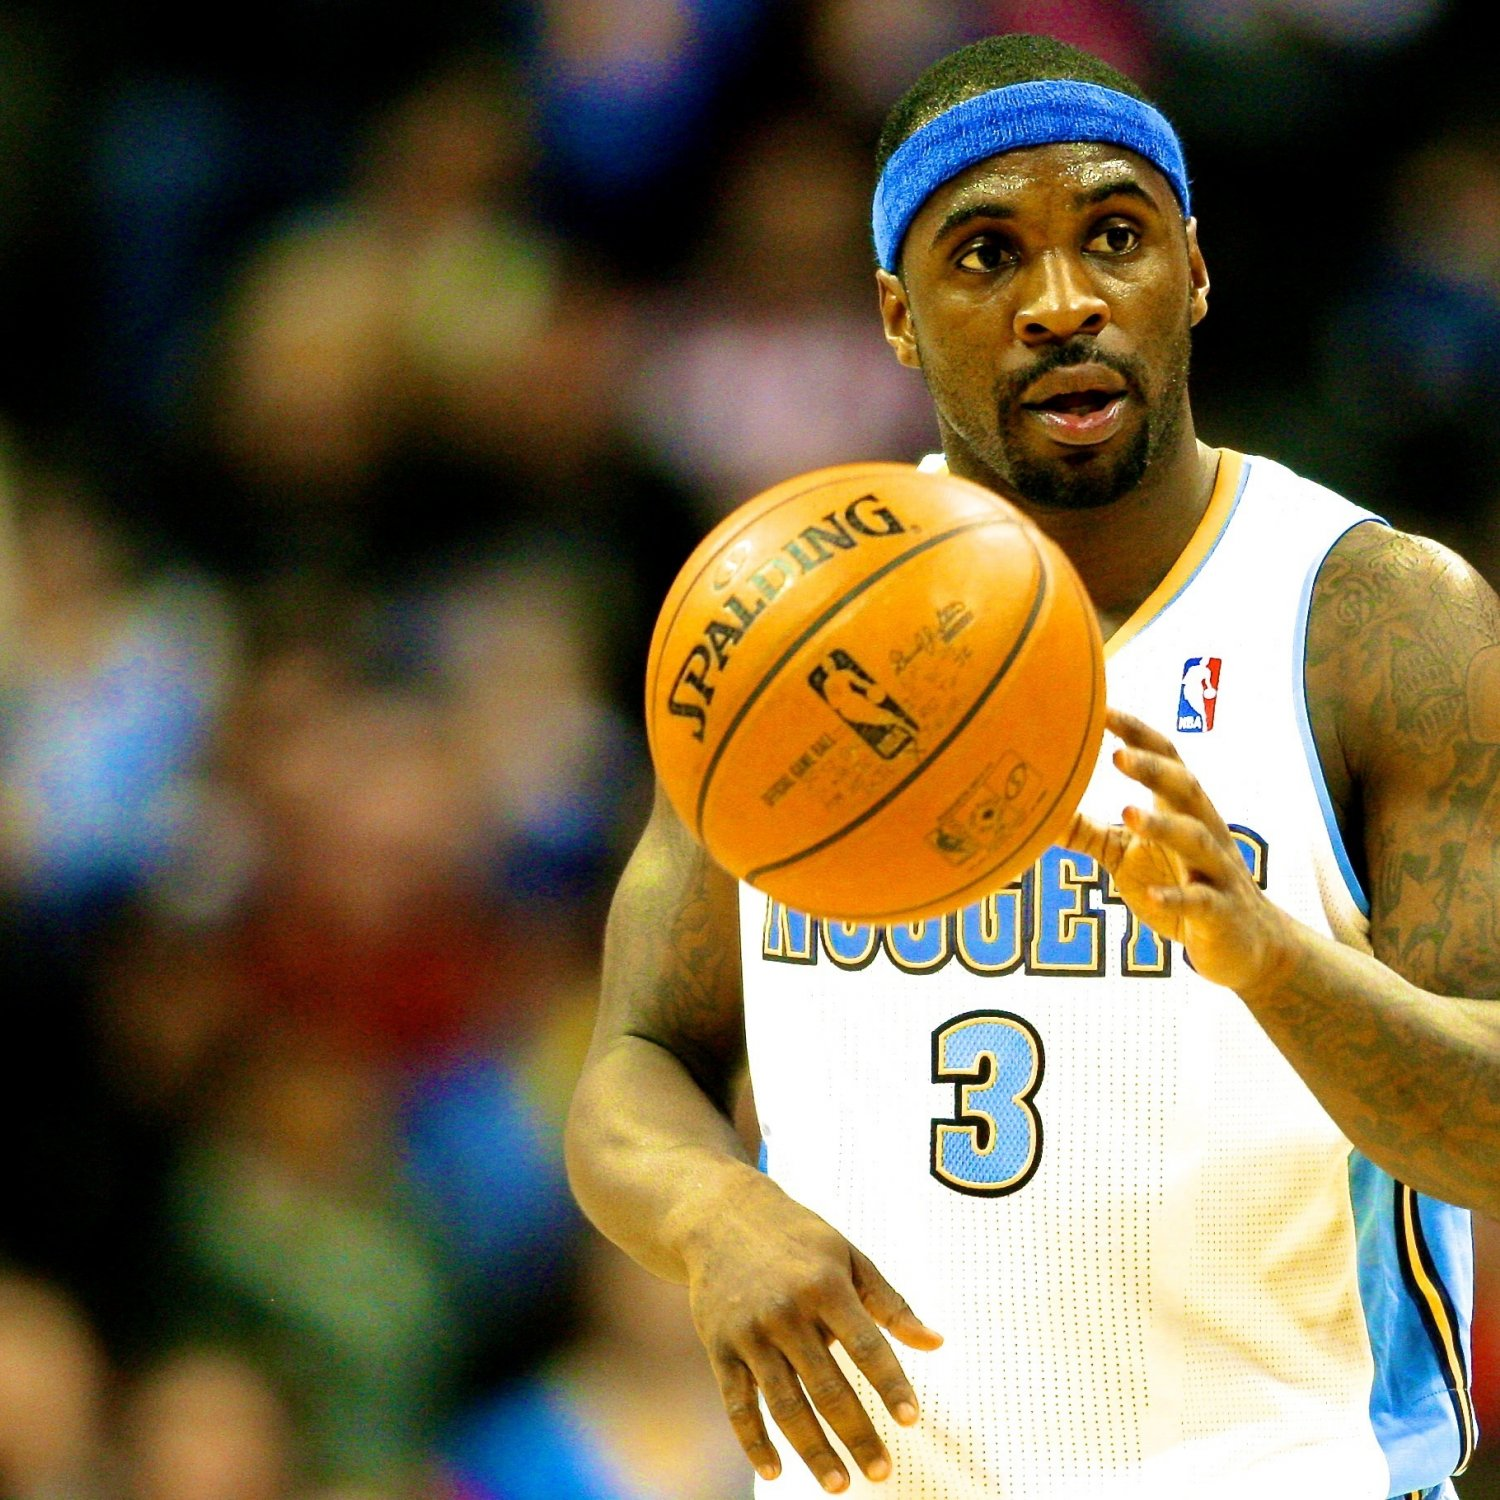 Nuggets Updated Roster: Nuggets' Ty Lawson Charged With Physical Harassment And